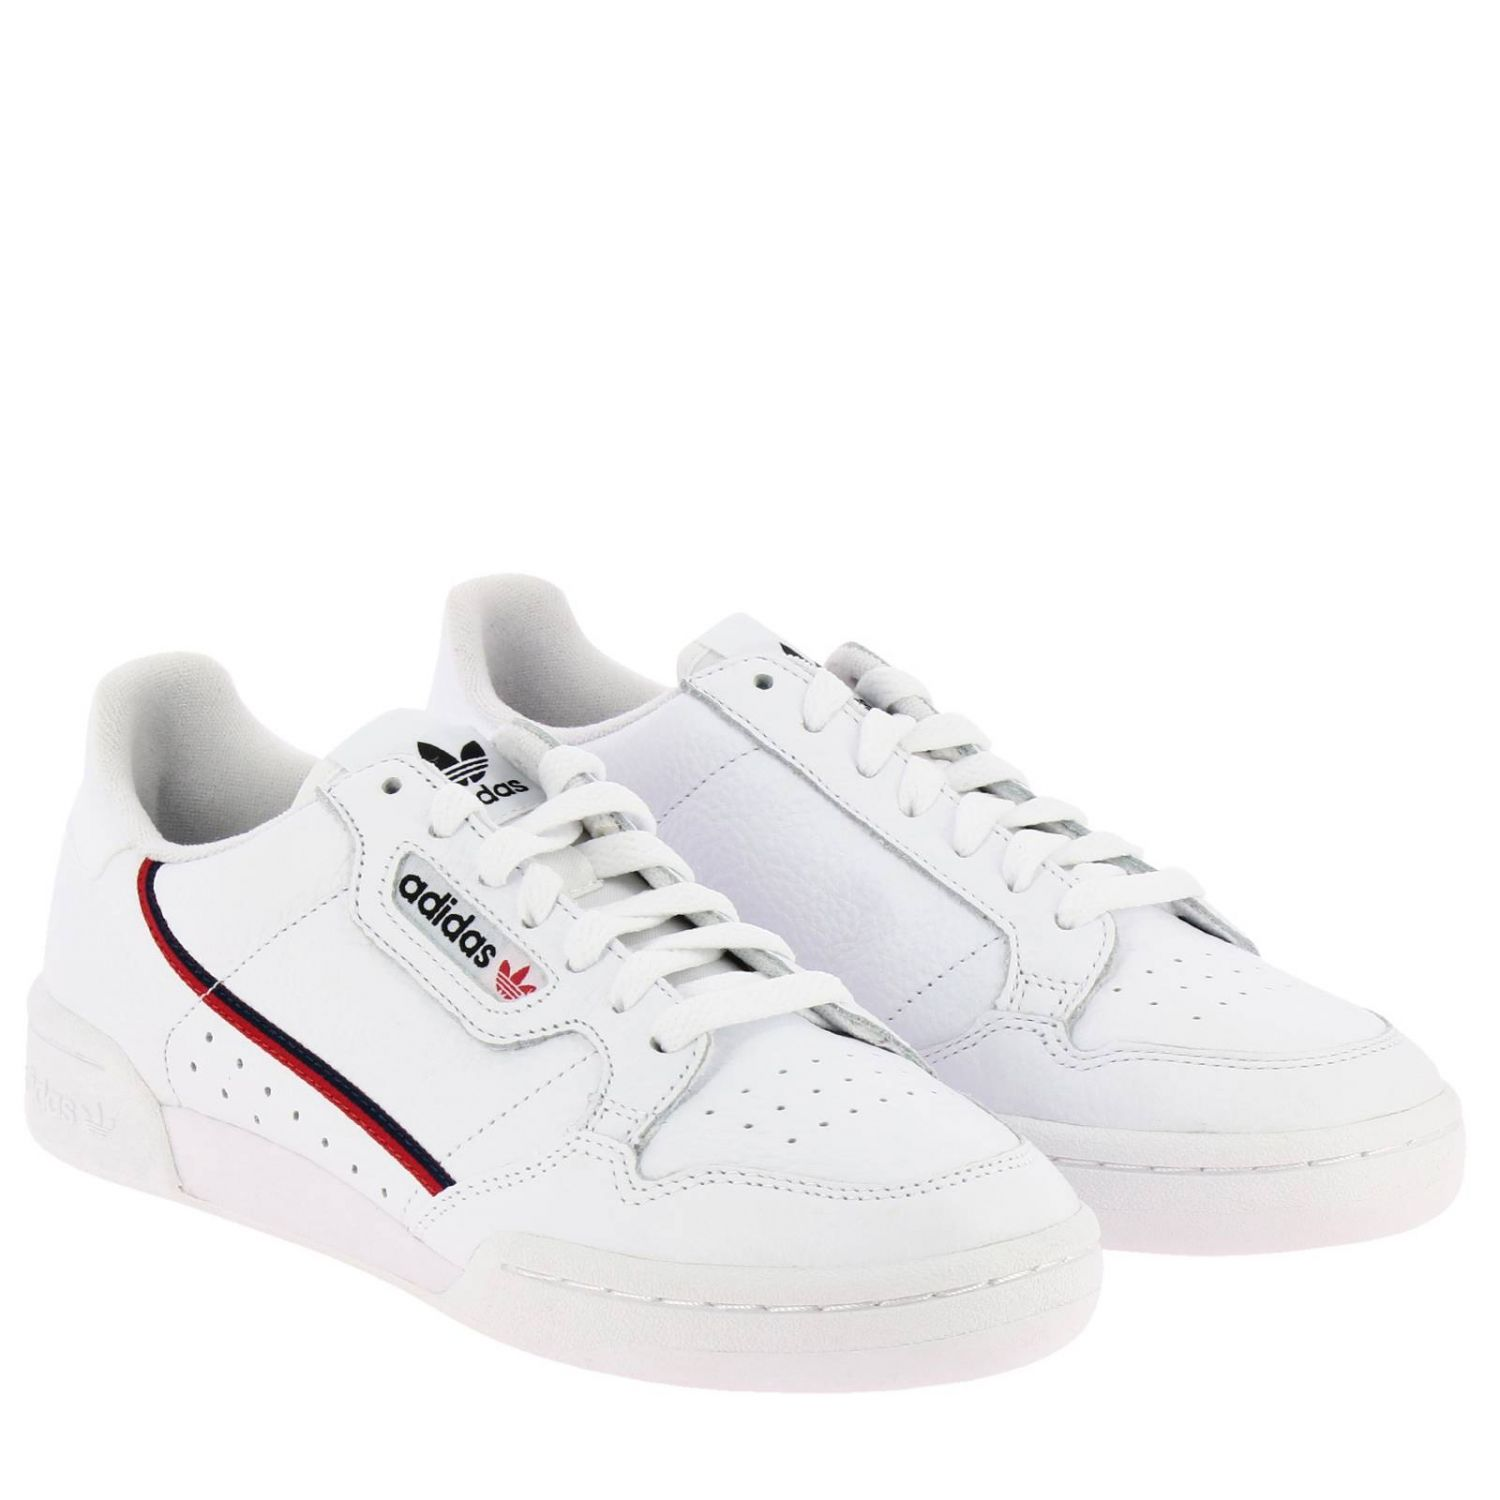 Sneakers Adidas Originals: Adidas Originals 80 Sneakers in leather with stripes white 2